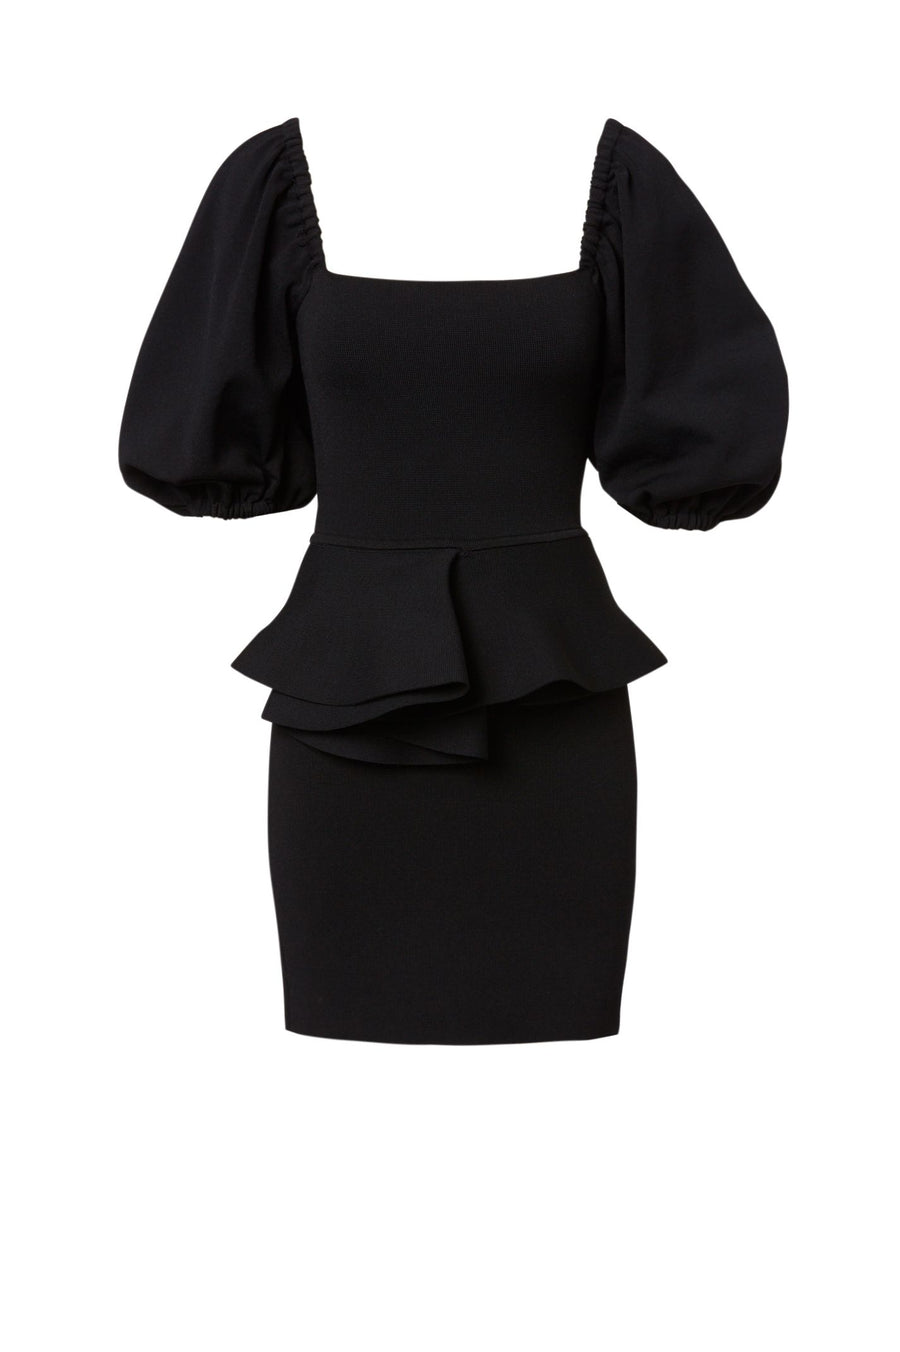 Crepe Knit Short Coupe Dress, Mini Length, Color Black, Peasant Sleeves, Ruffle At Waist